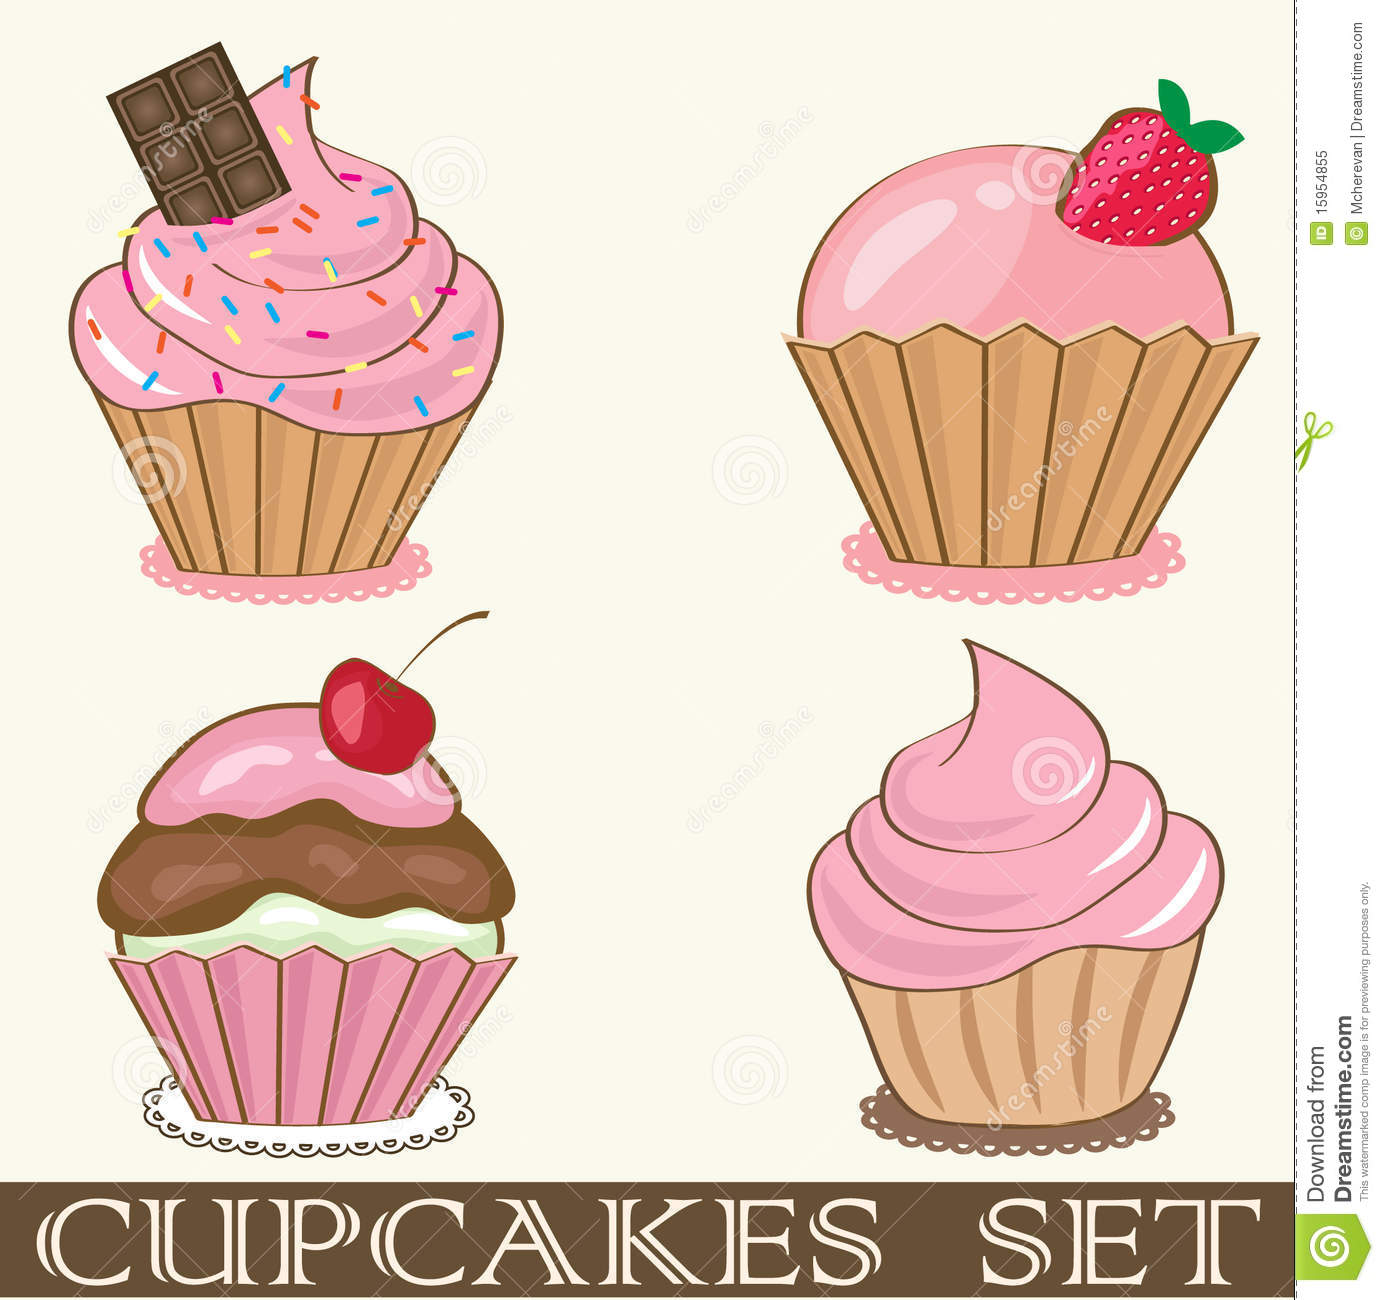 birthday card with strawberry cupcake. royalty free stock photo, Birthday card